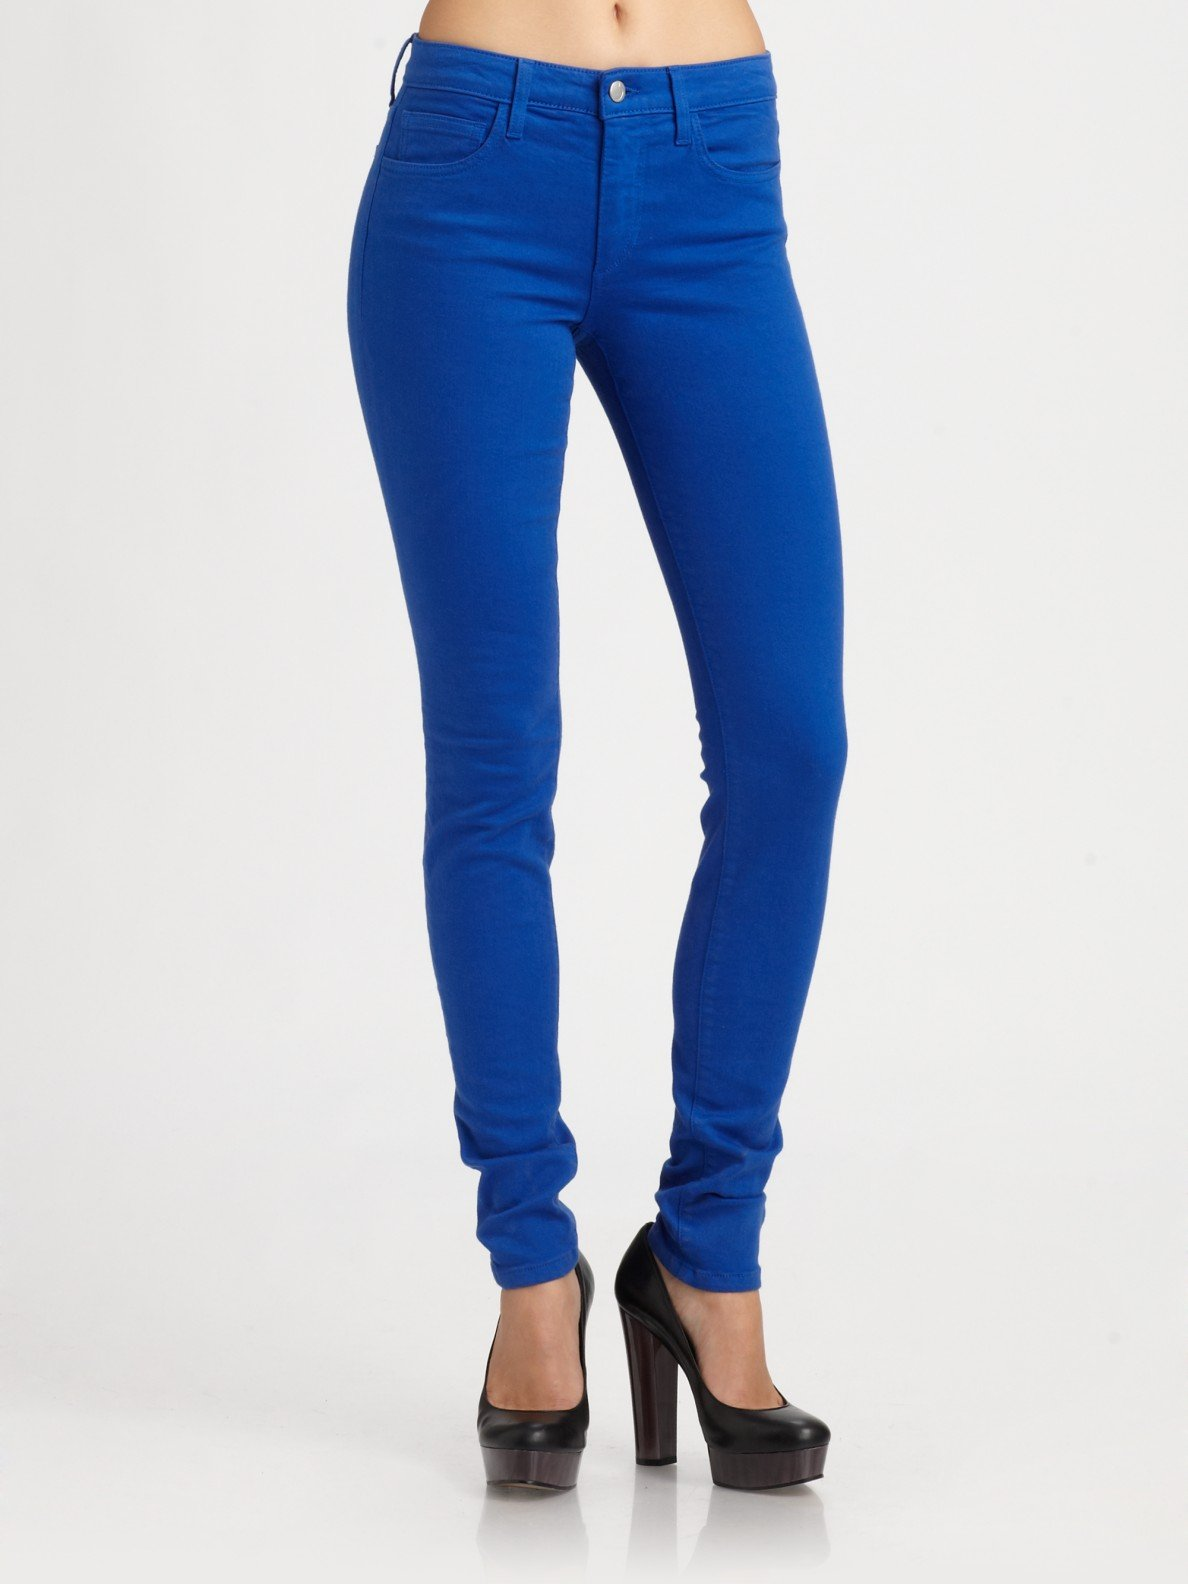 Free shipping and returns on Women's Colorful Skinny Jeans at 24software.ml